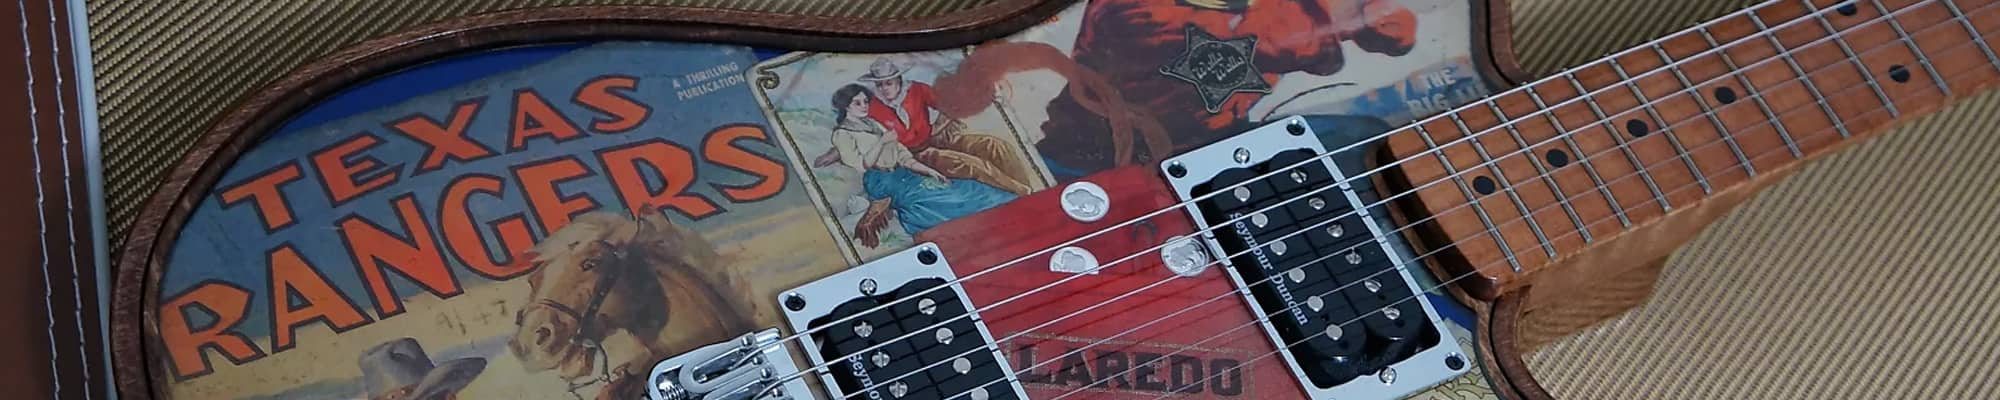 The 22 Most Outrageous Guitar Finishes On Reverb Right News Fender American Special Stratocaster Wiring Diagram